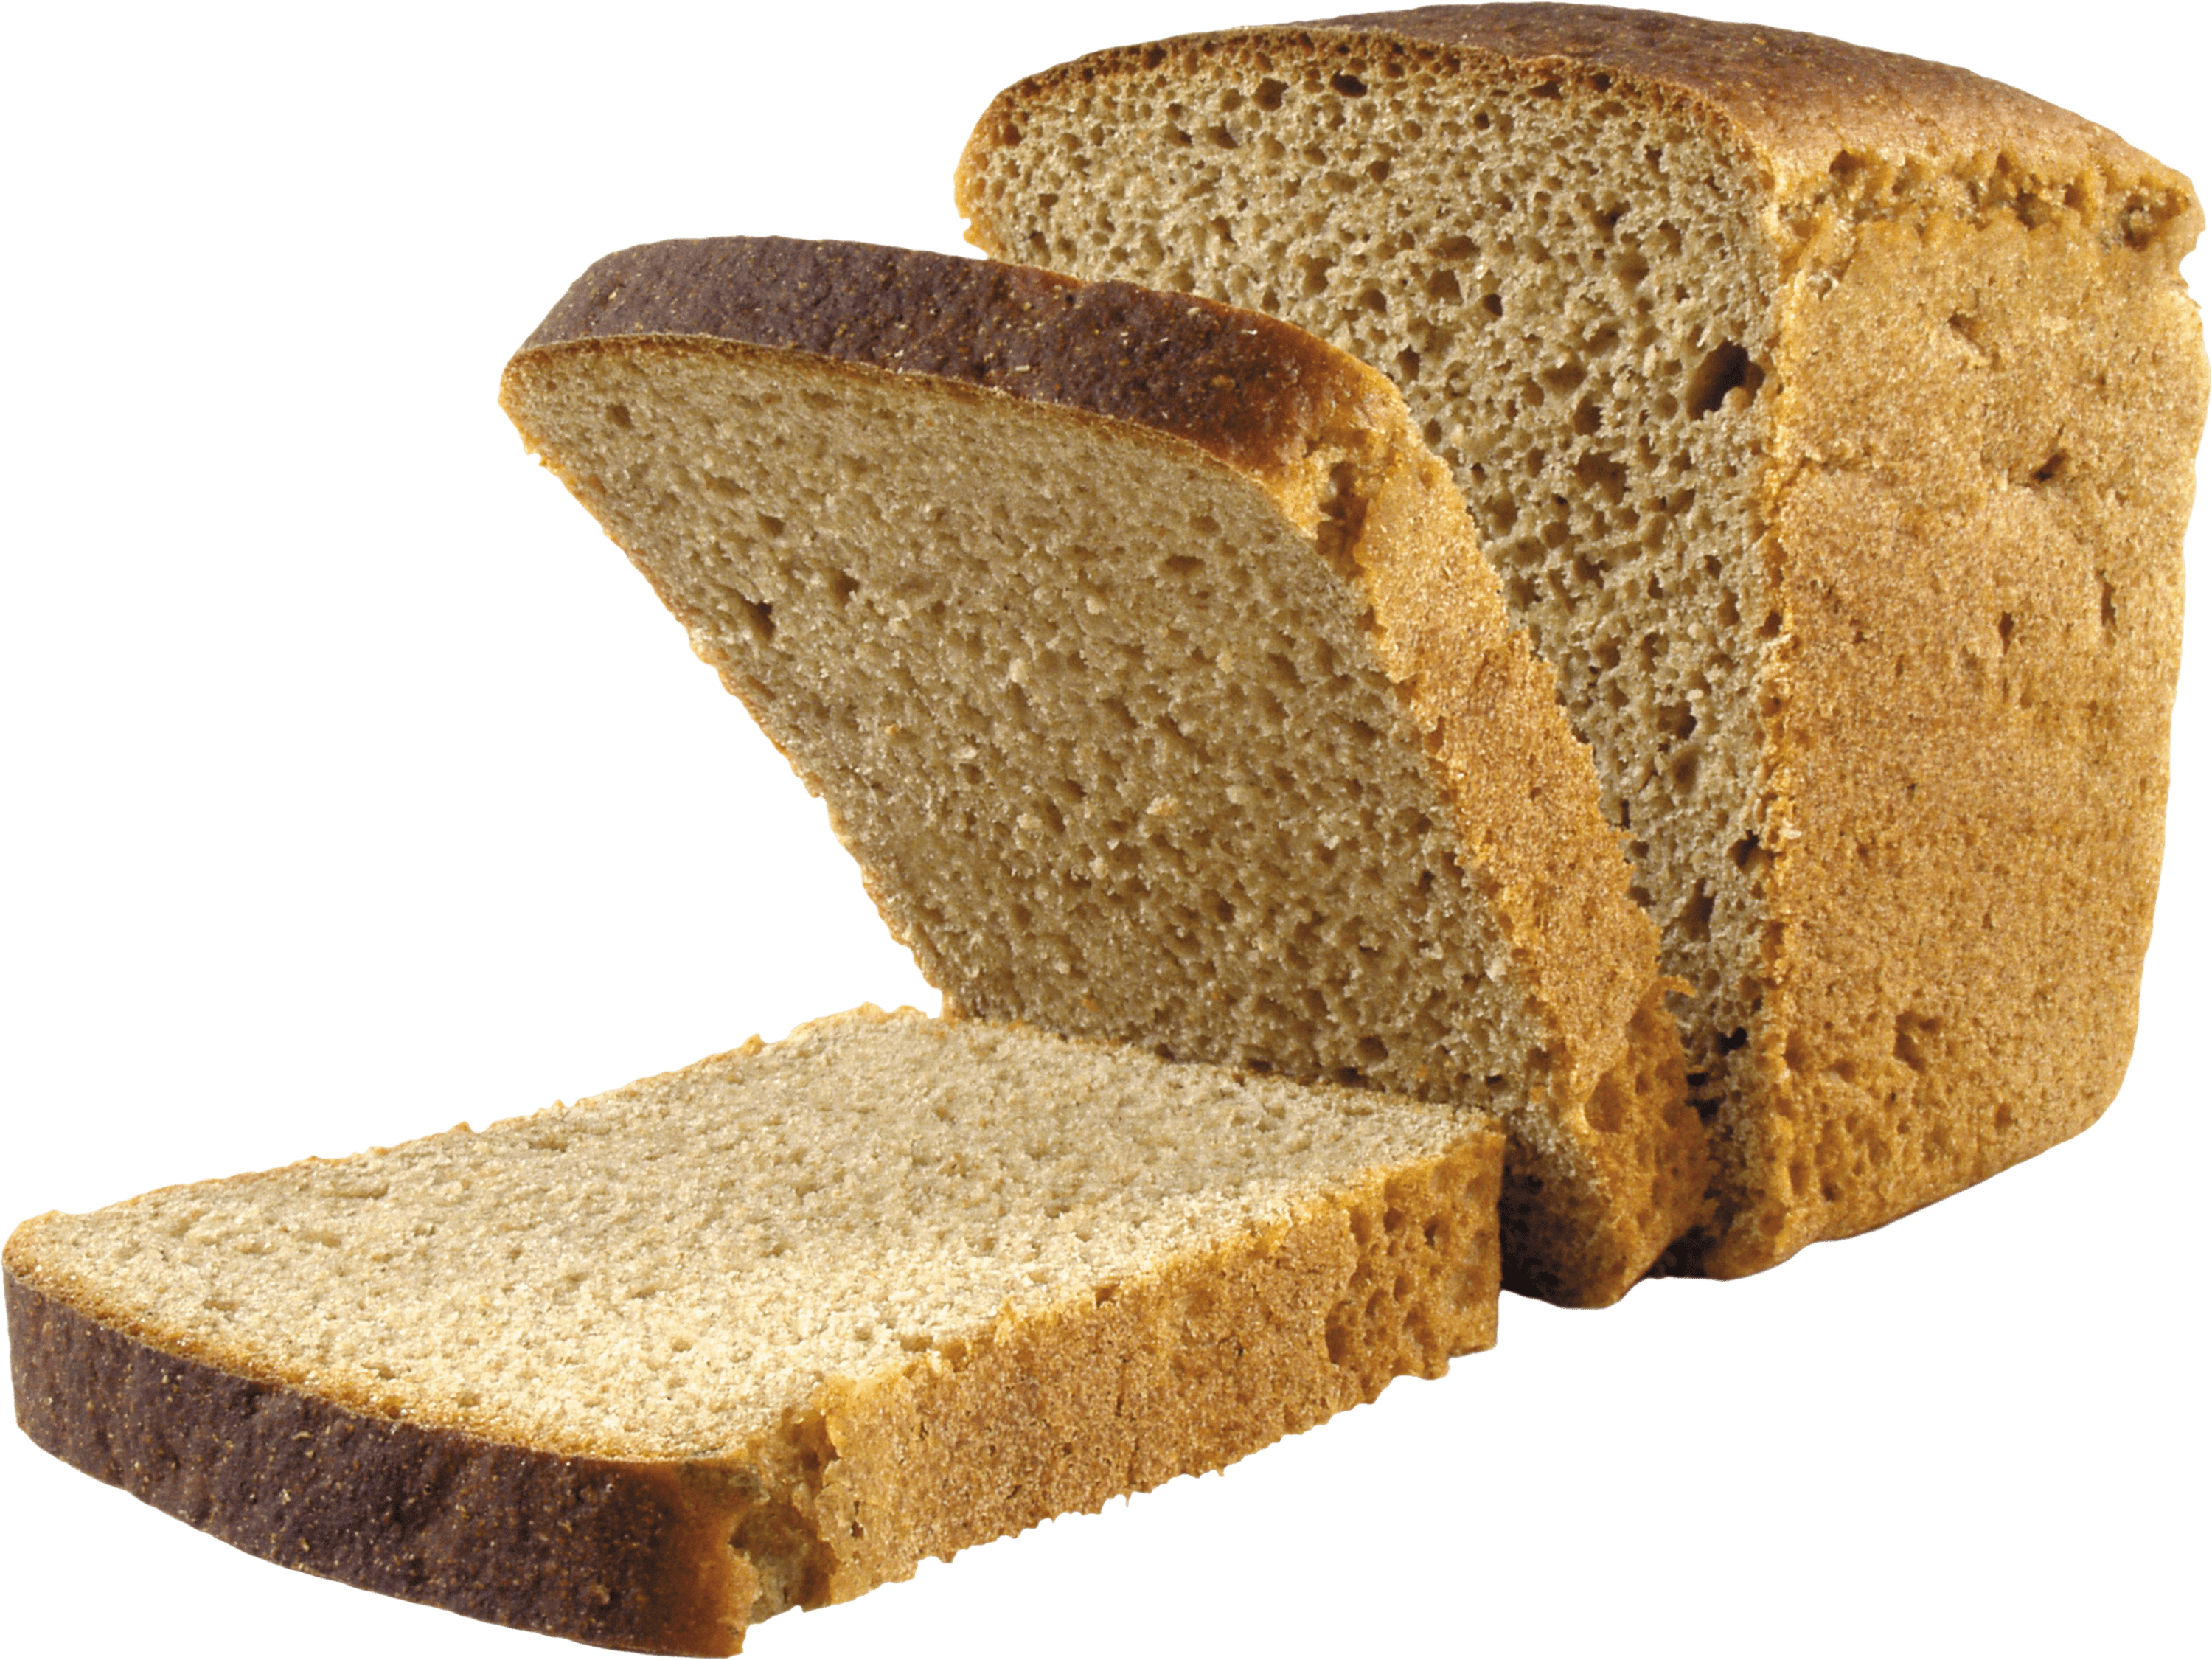 Is Cake Considered Bread